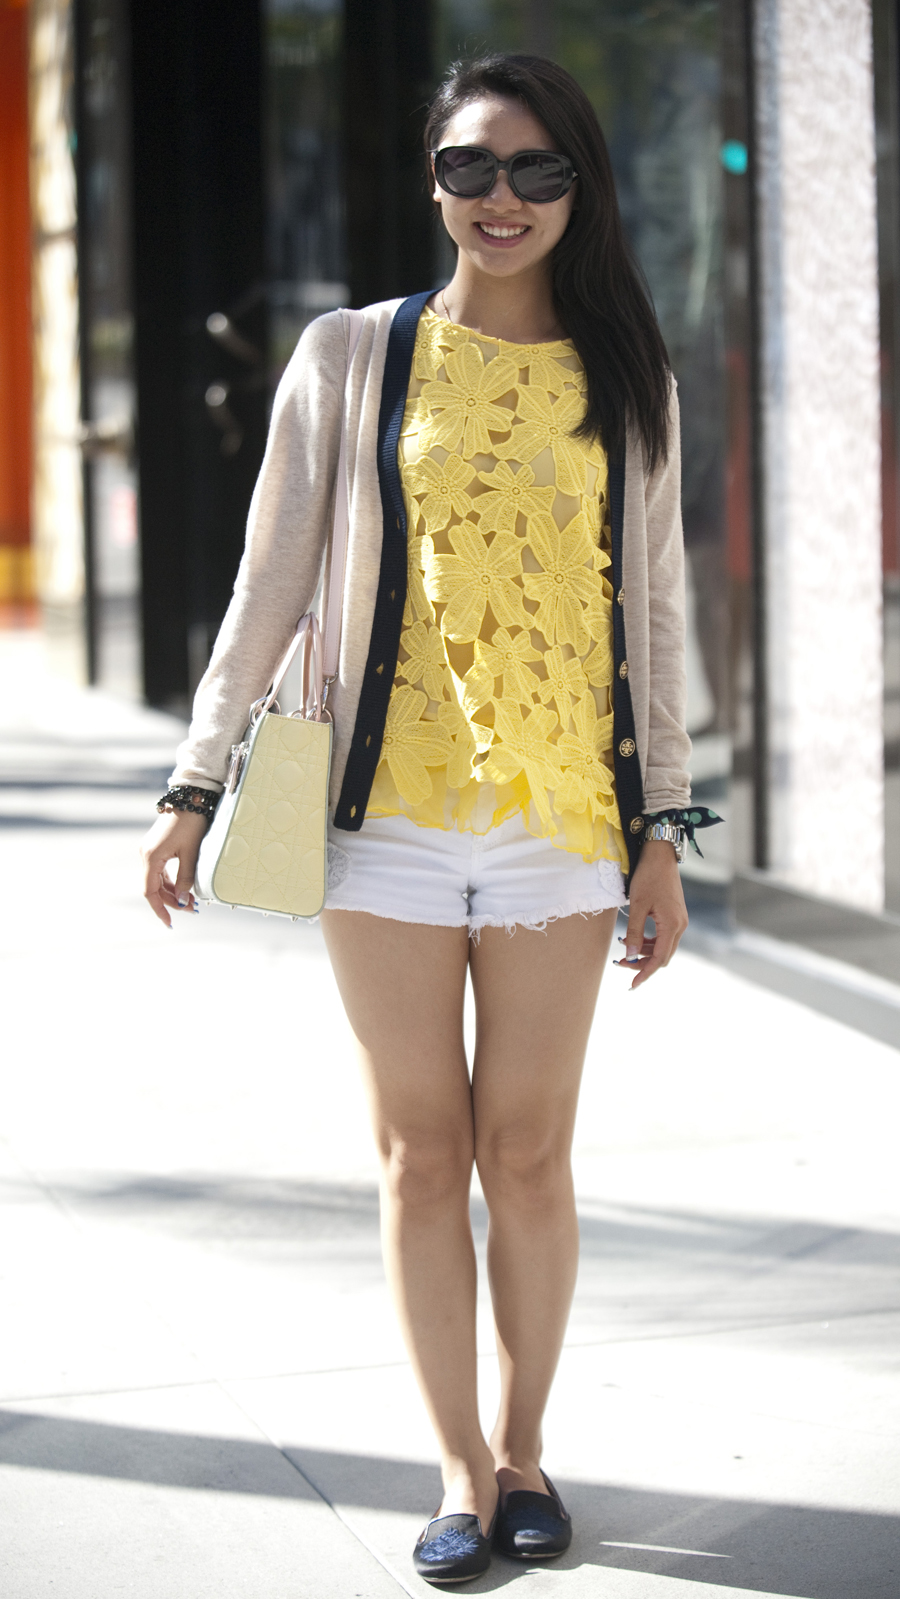 Tina Gou, 25, wears a yellow daisy-embroidered Love Me Me blouse.